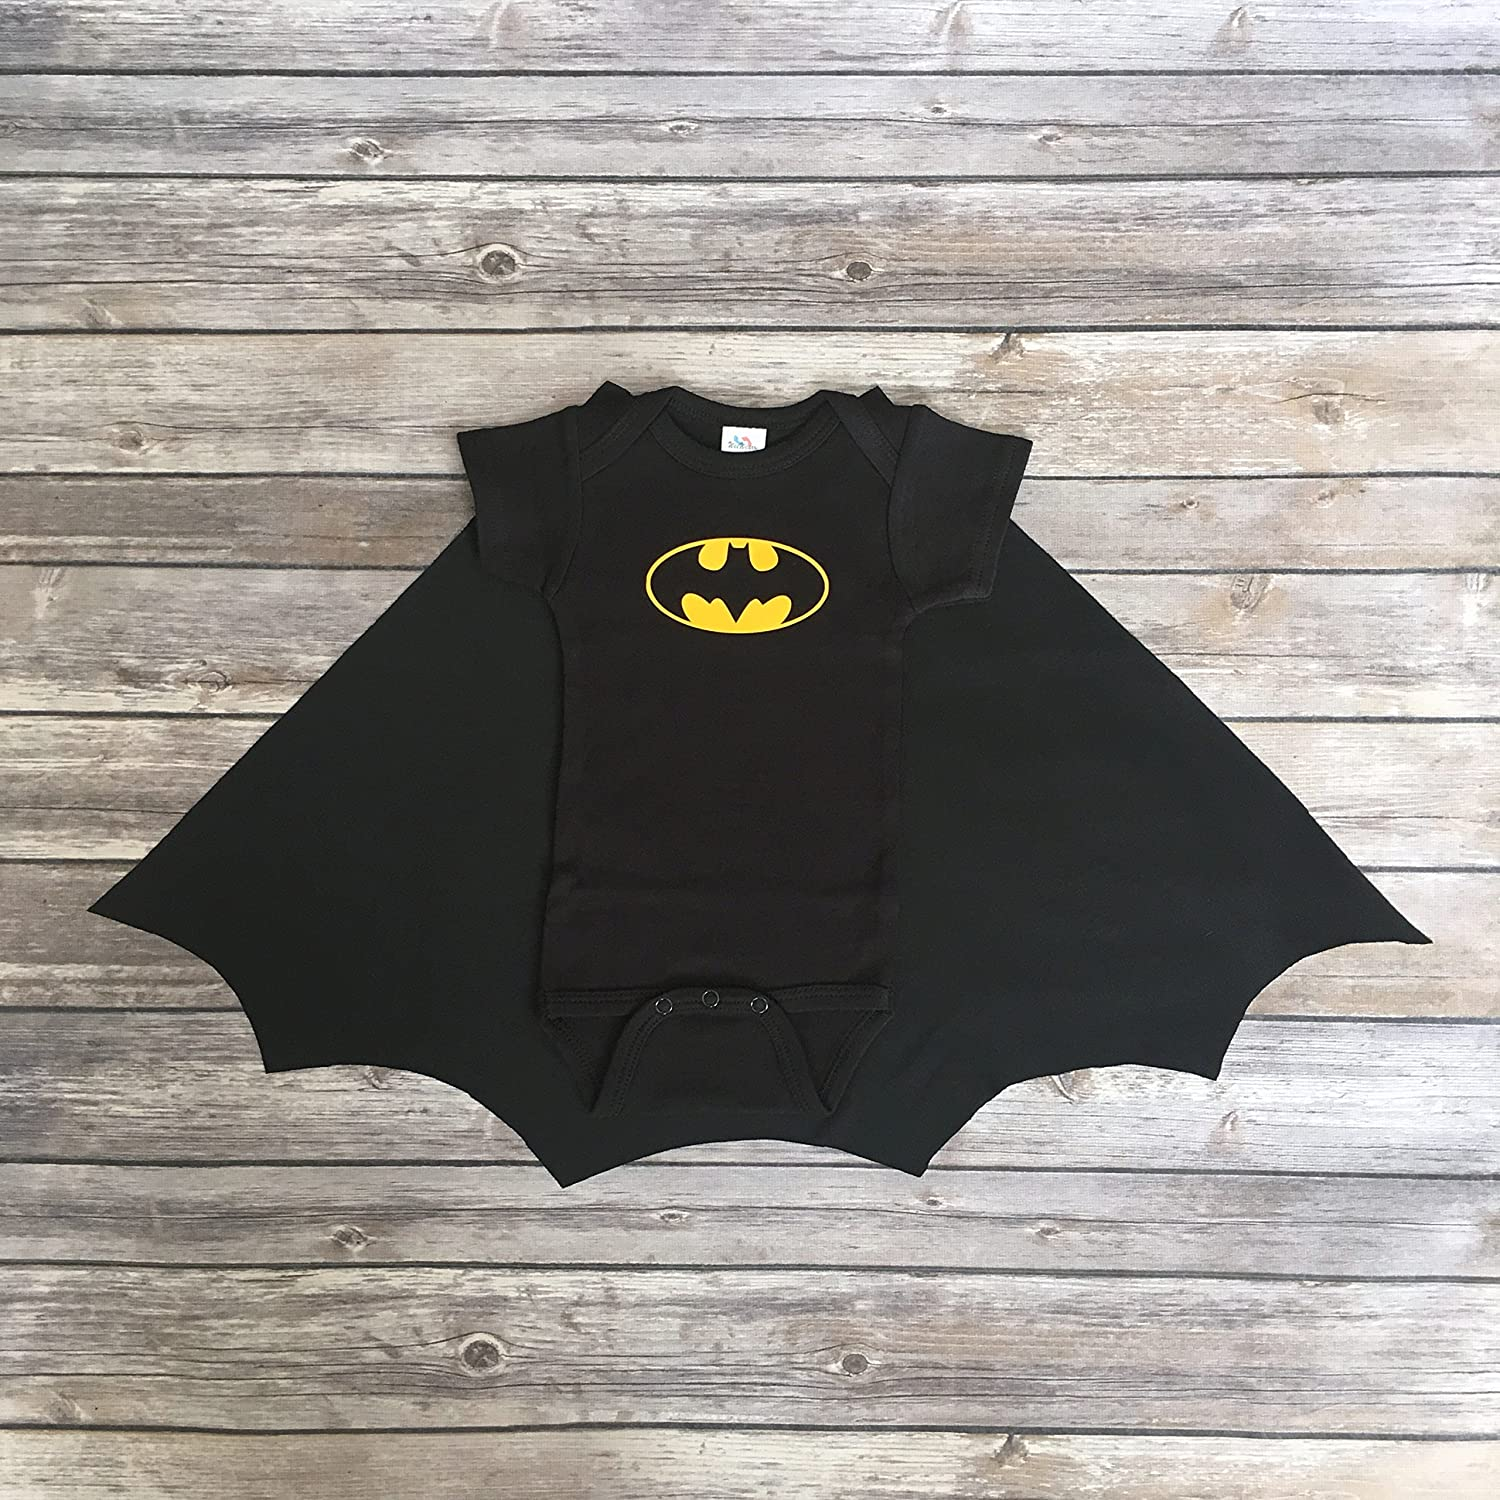 Handmade Baby Boy Super Hero Black Batman Onesie Bodysuit with Cape 6-12m